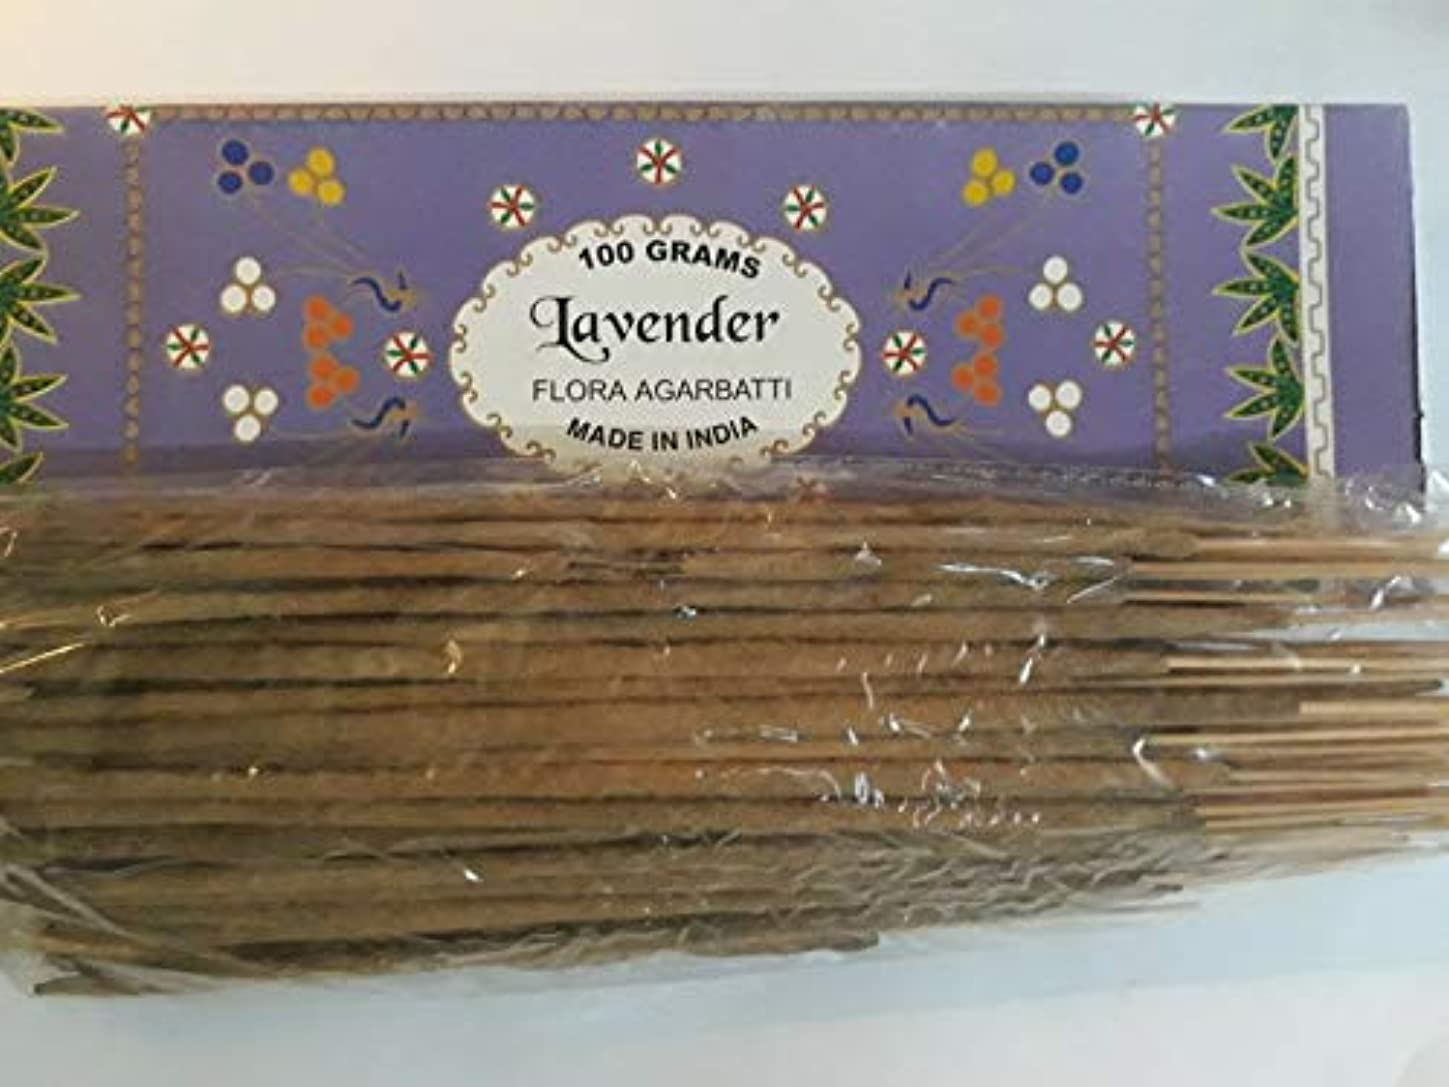 産地エキス専制Lavender ラベンダー Agarbatti Incense Sticks 線香 100 grams Flora Incense Agarbatti フローラ